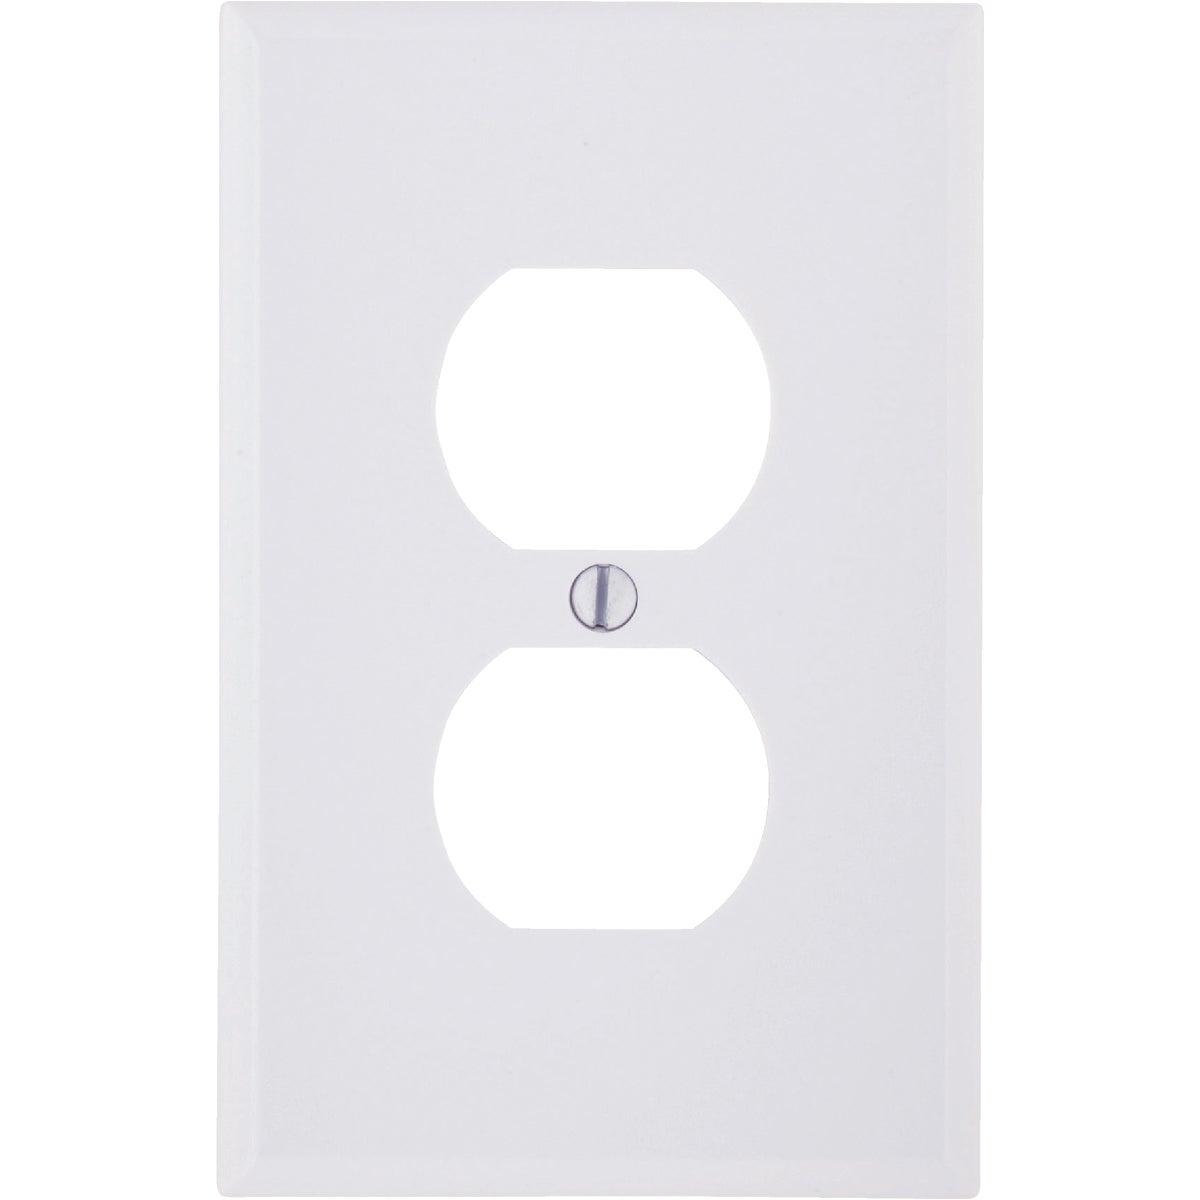 WHT DUPLEX WALLPLATE - 021-80503-00W by Leviton Mfg Co